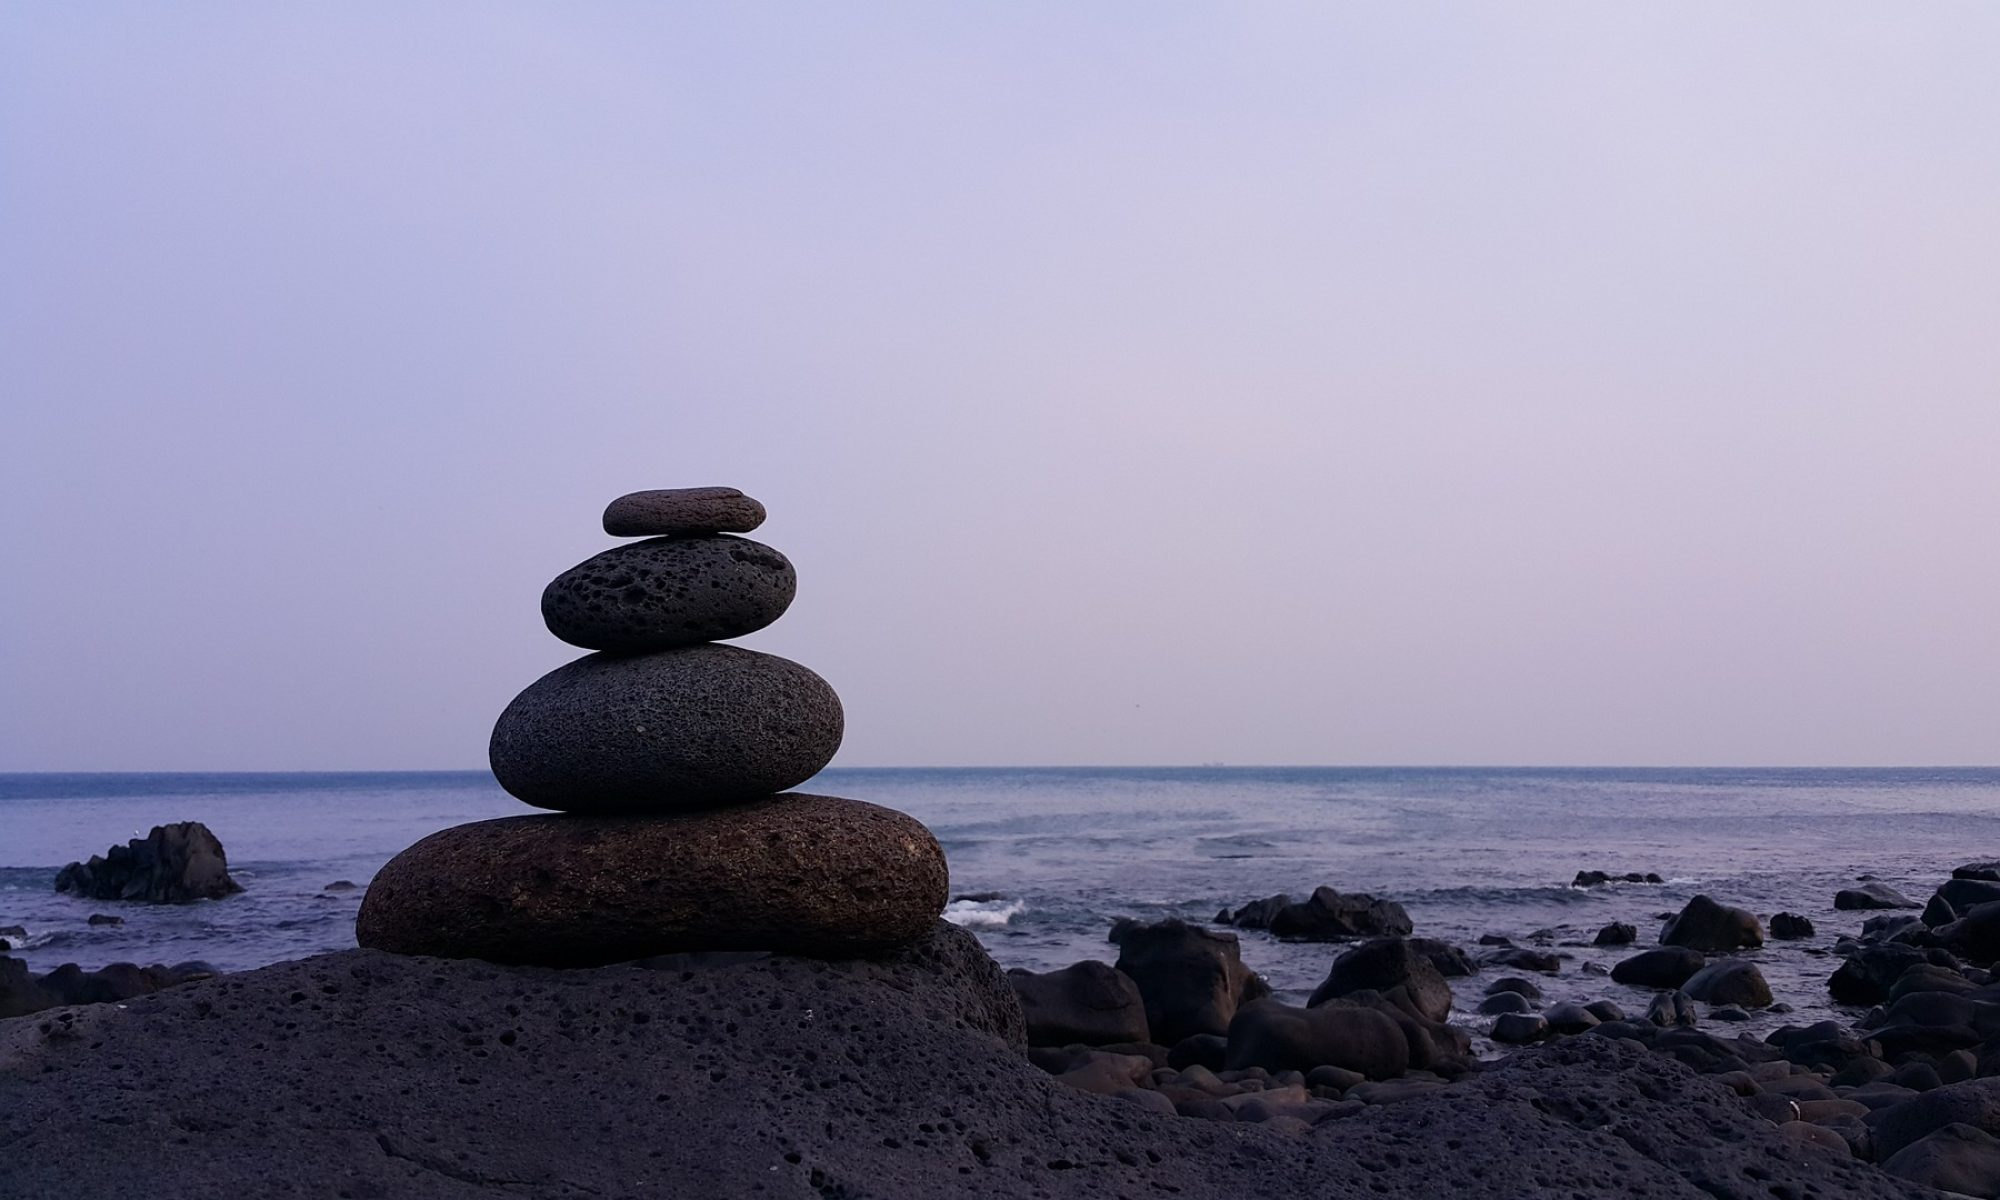 Integrative Medicine, Occupational Therapy and Therapeutic Yoga